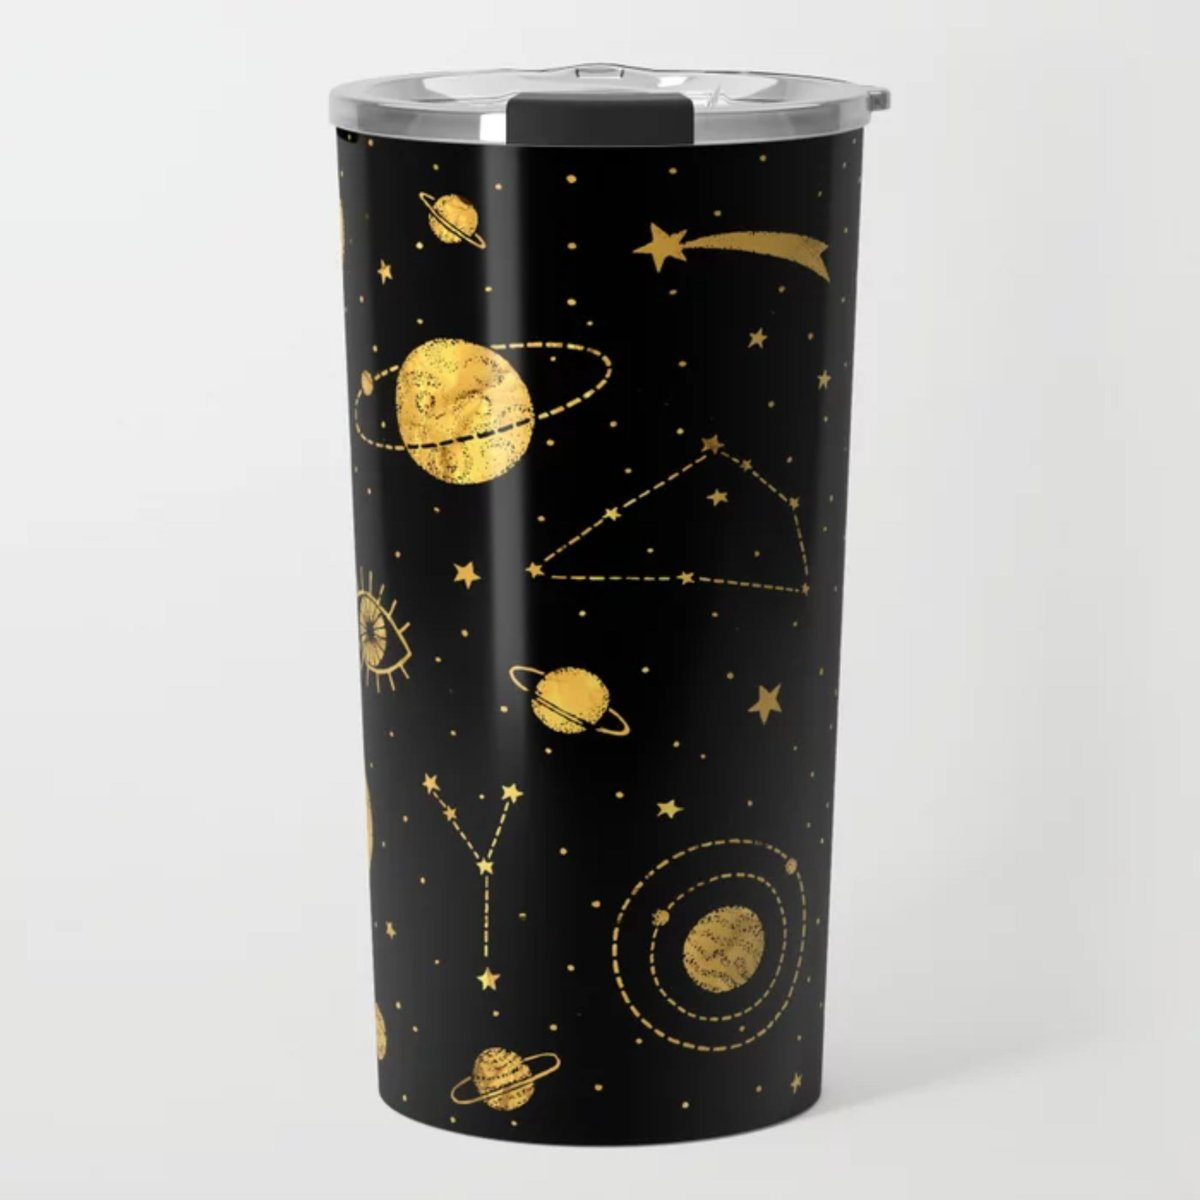 30% Off #Tabletop, #HomeDecor, #Outdoor & #Lifestyle in my @society6 Shop Today! >> https://t.co/9ZEjkedgrM . . #travelmug #mugs #space #stars #planets #constellations #galaxy #giftidea #giftideas https://t.co/NHpUgOEKGP